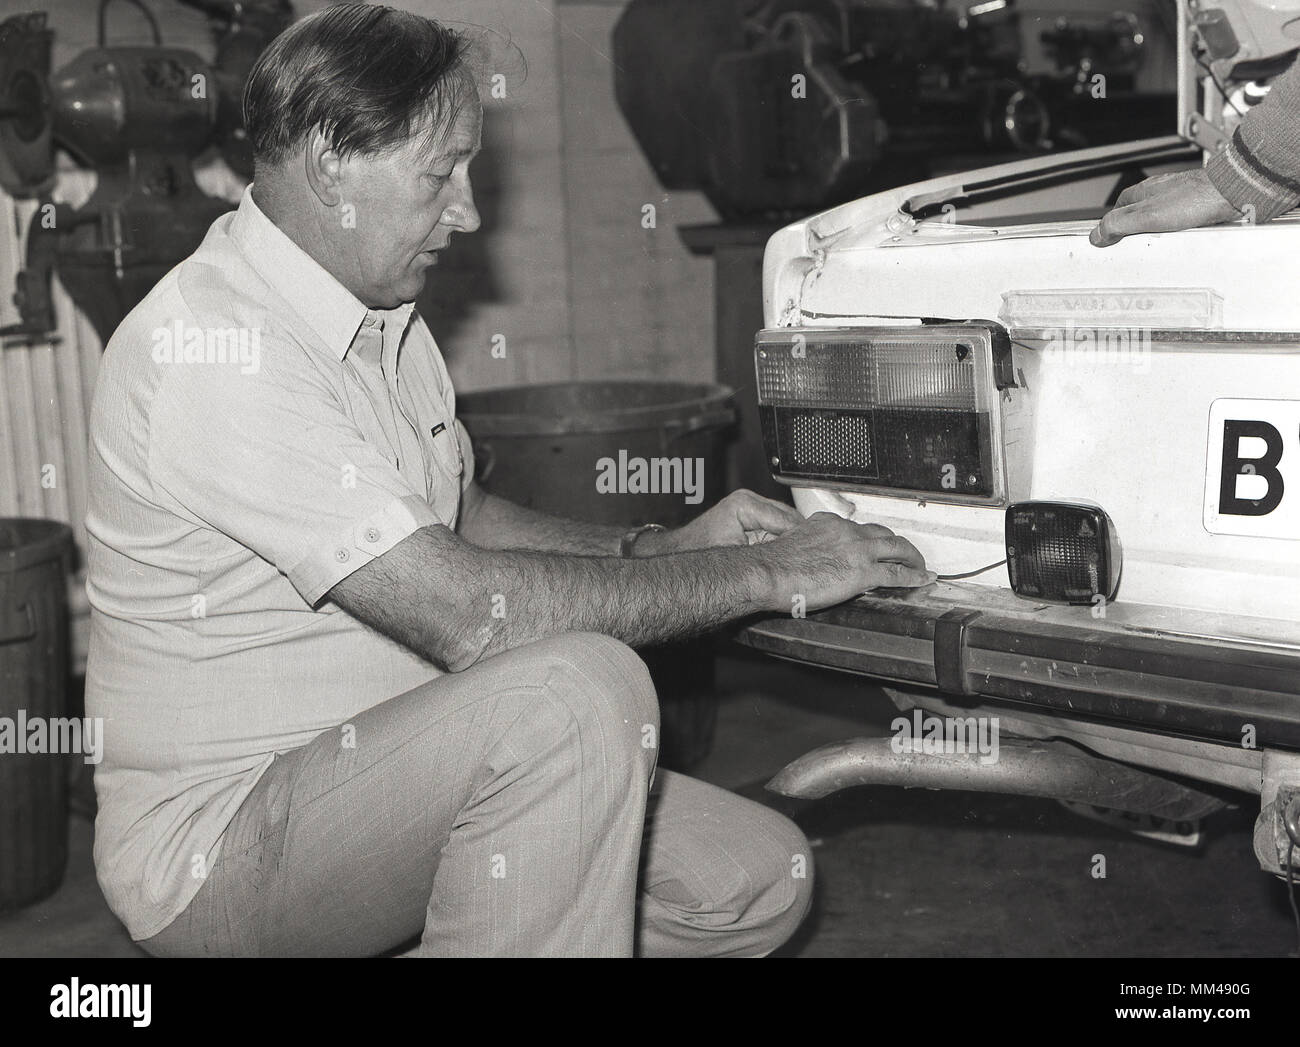 1970s, historical, a man attending an adult education class of car  maintenance or servicing, kneeling down while working on the back lights of a volvo motorcar, England, UK. - Stock Image